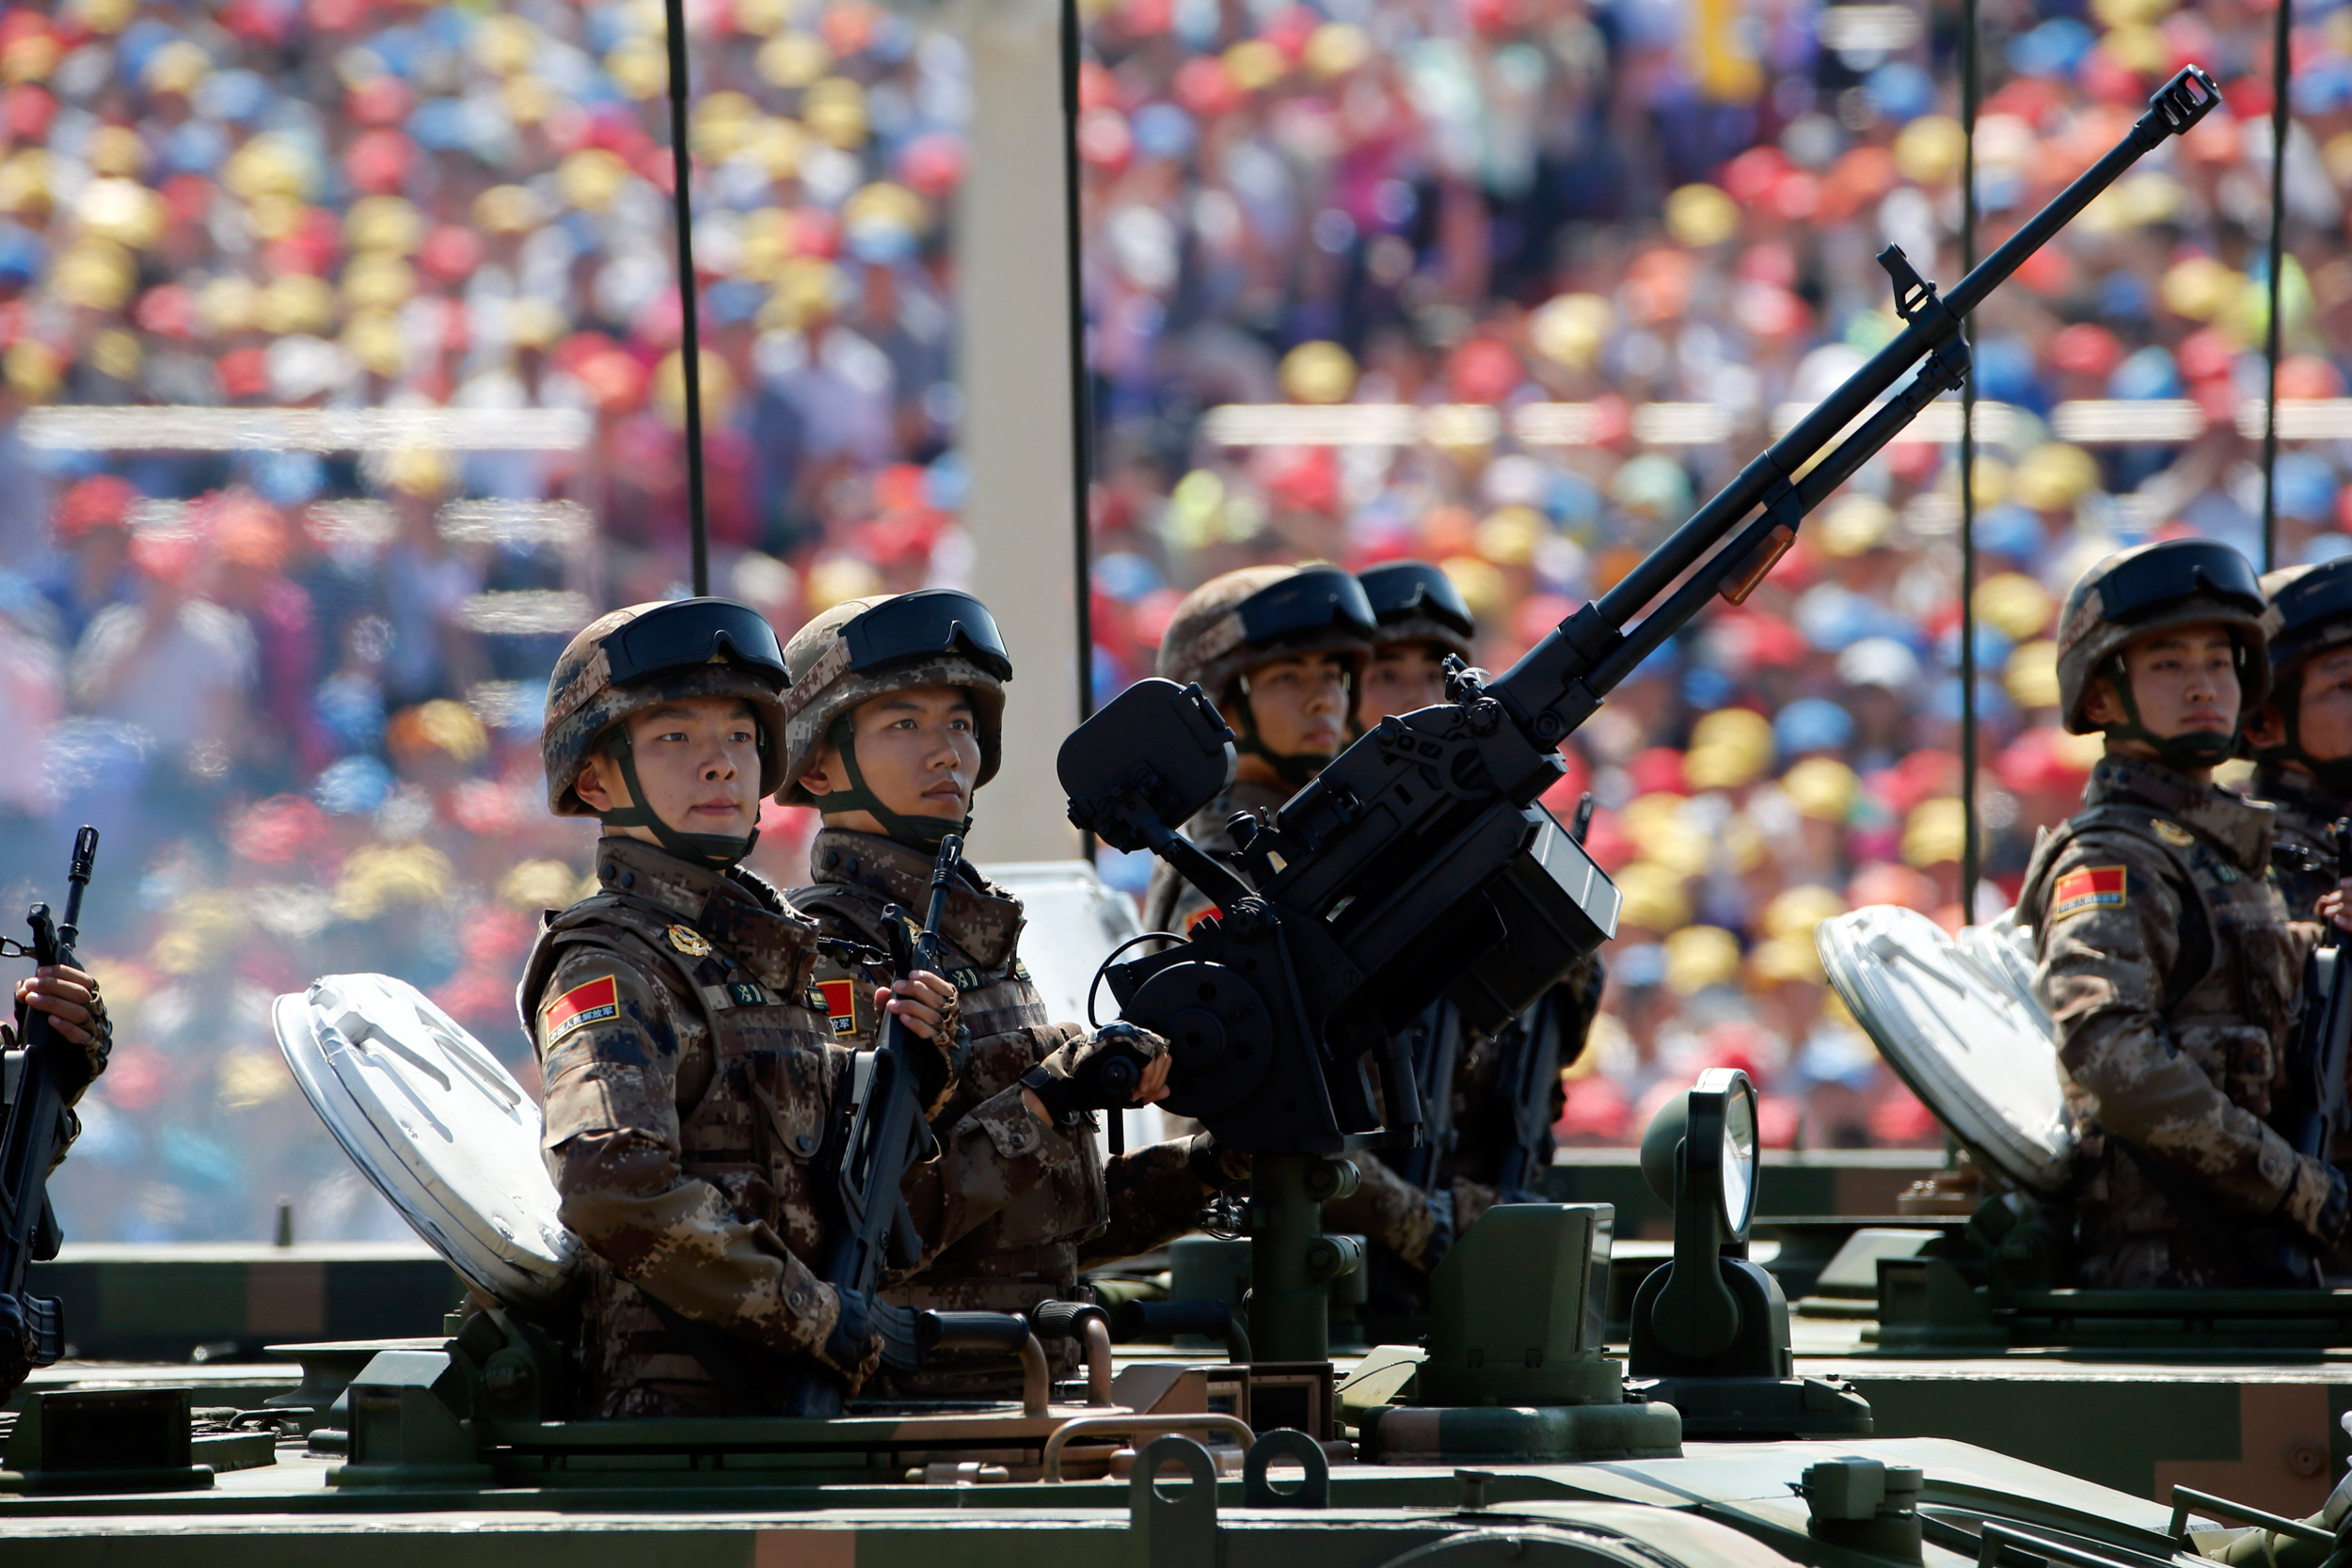 Huge Parade Can't Hide China Leader's Bruised Credibility